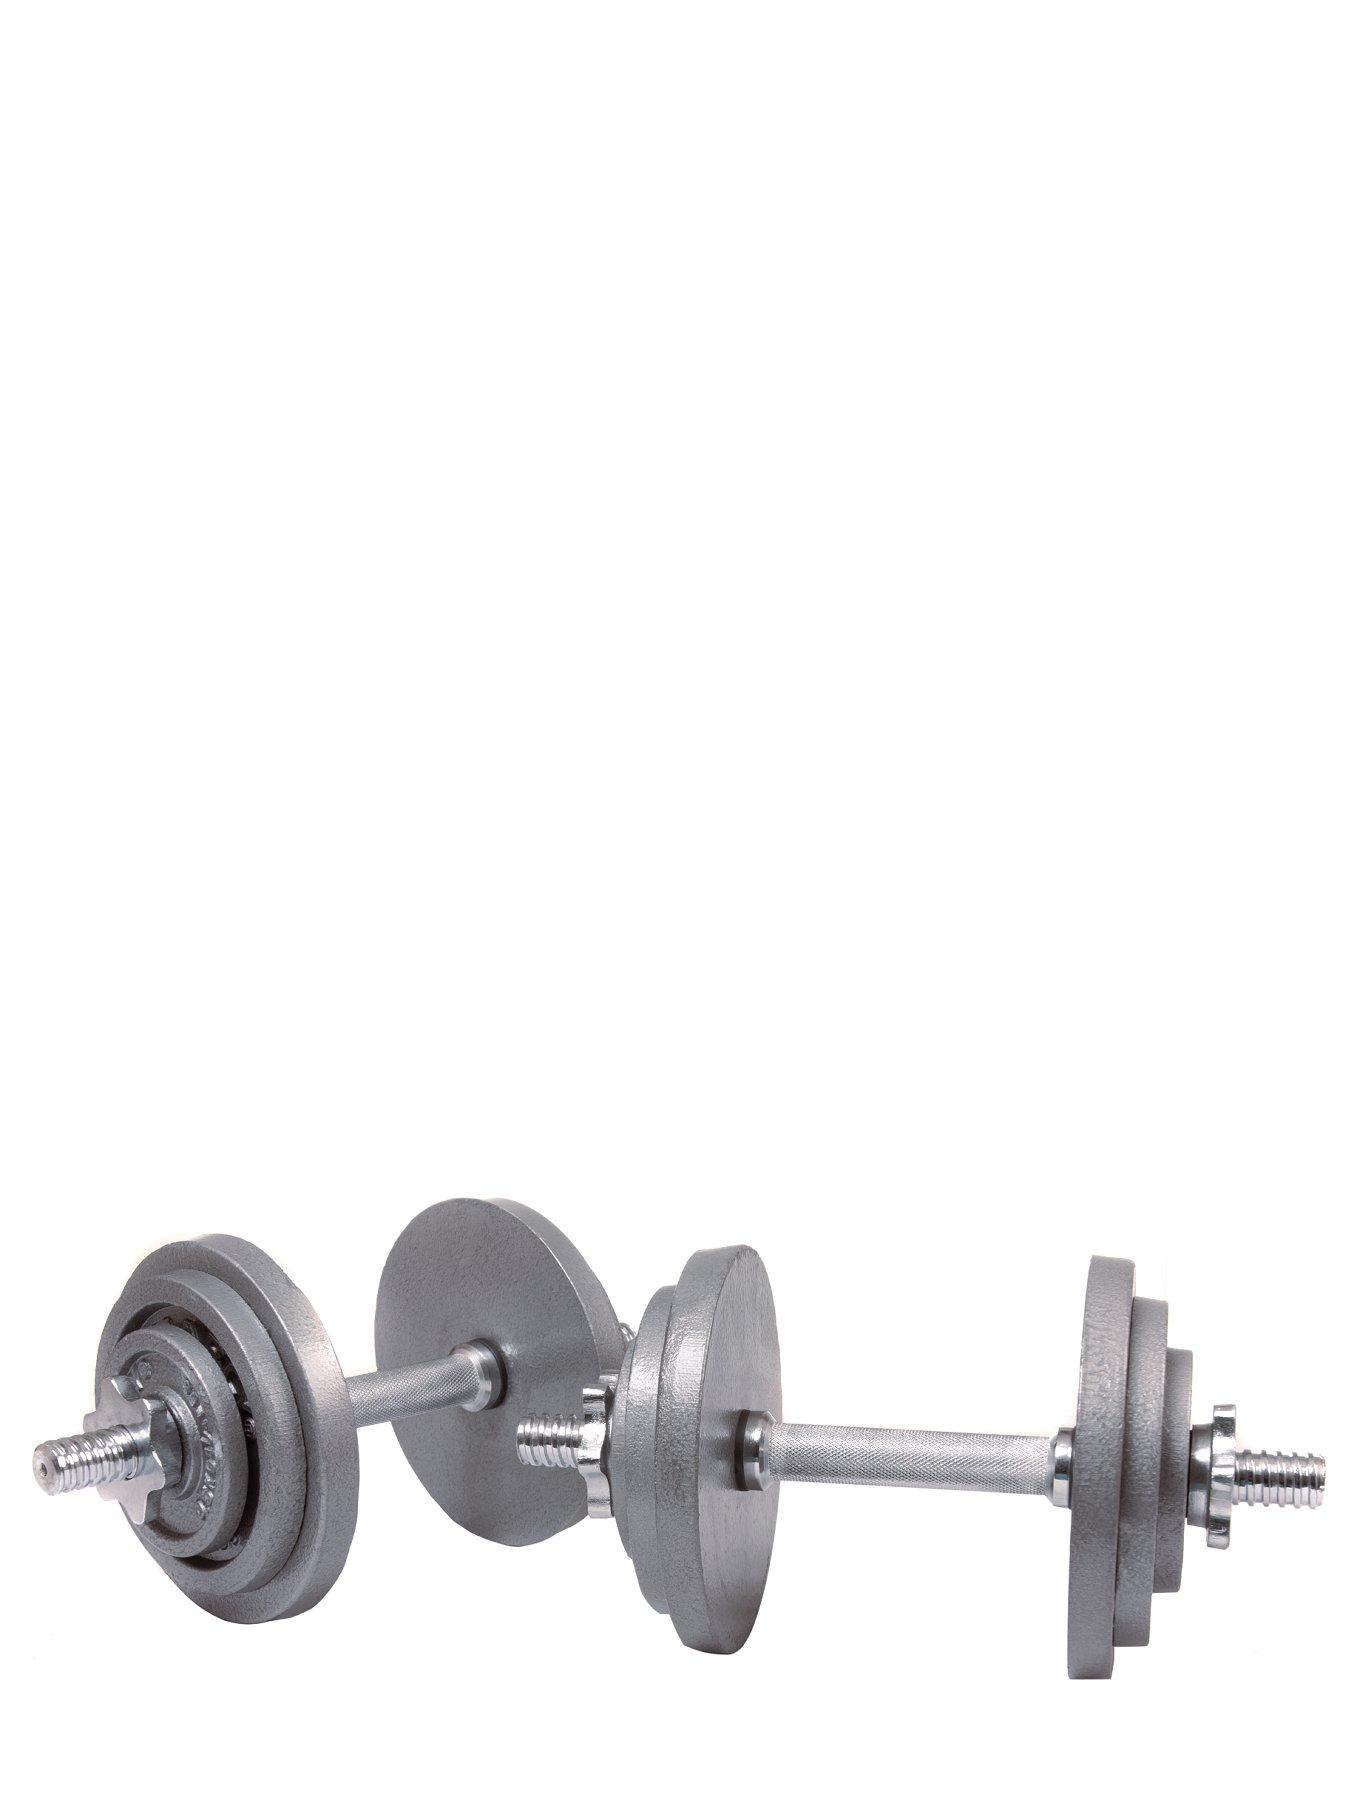 20kg Cast Iron Dumbbell Set